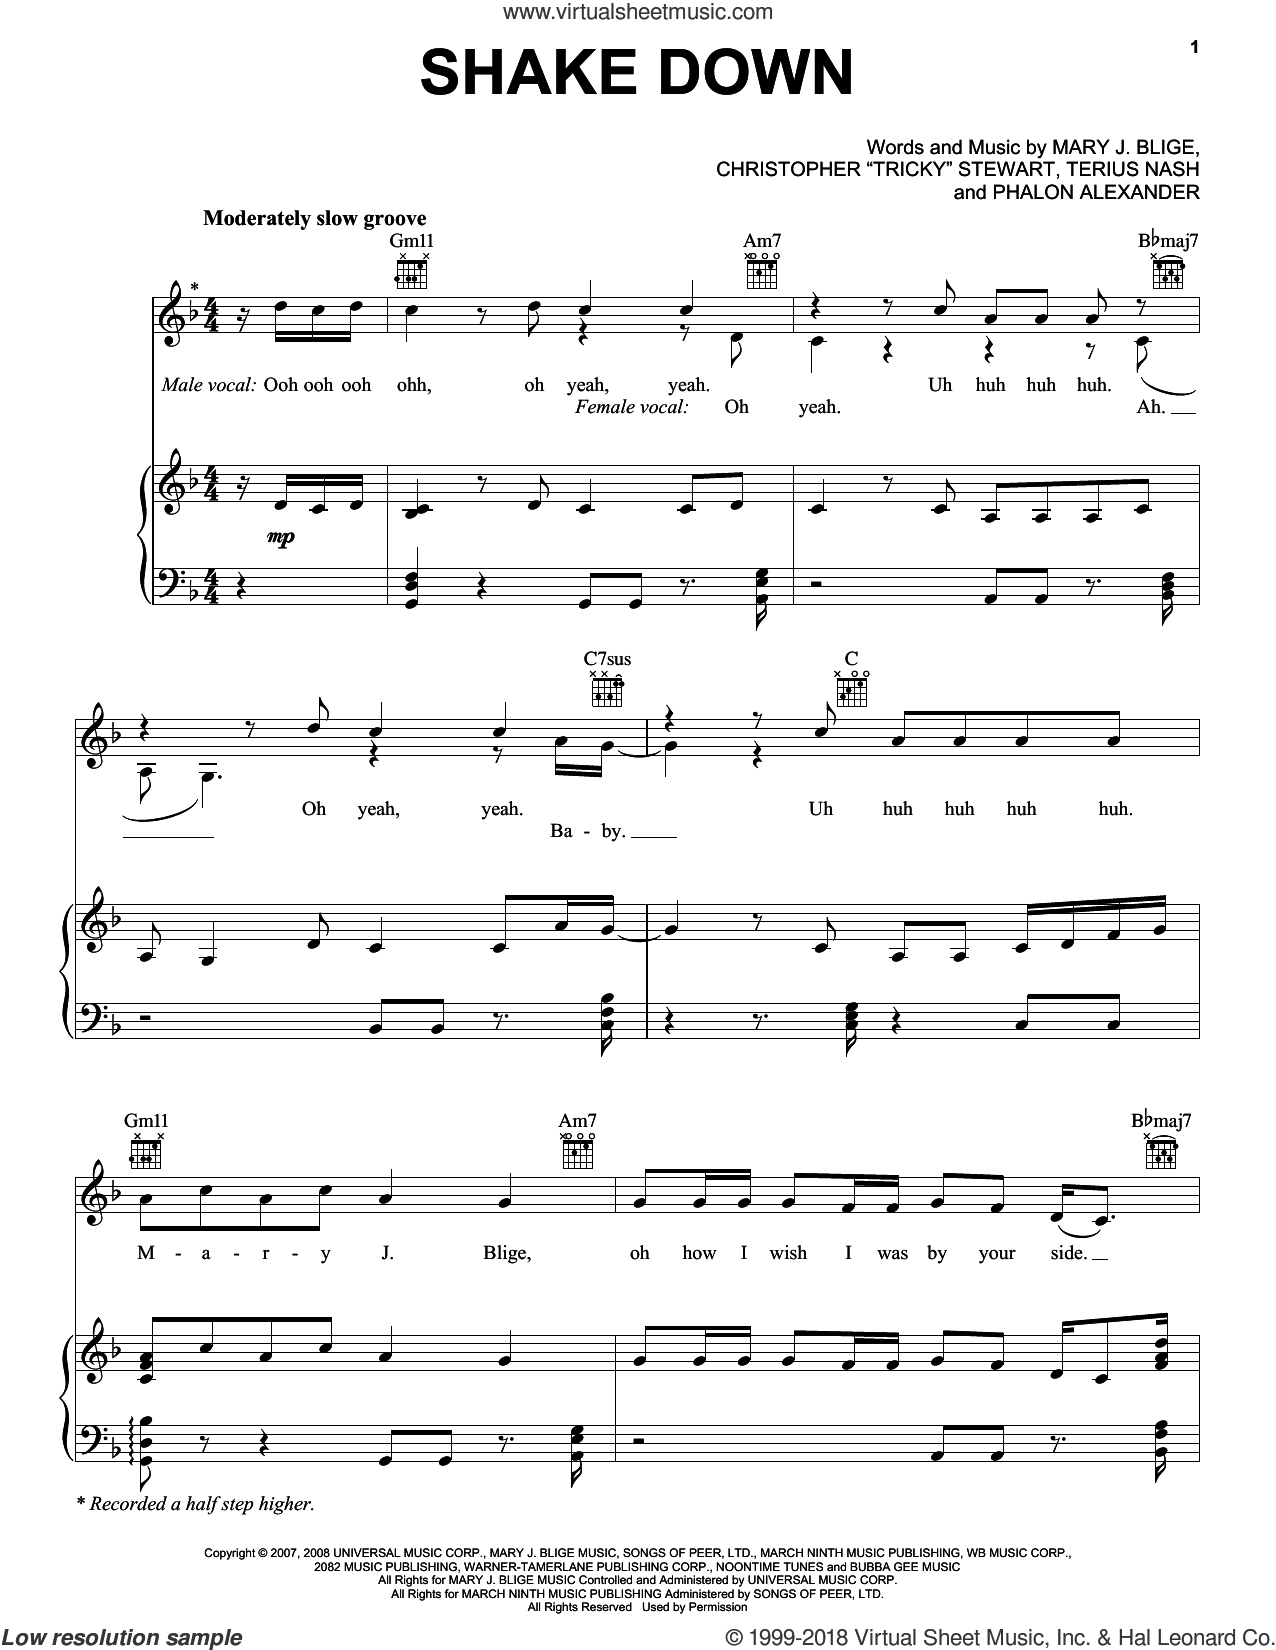 Shake Down sheet music for voice, piano or guitar by Terius Nash